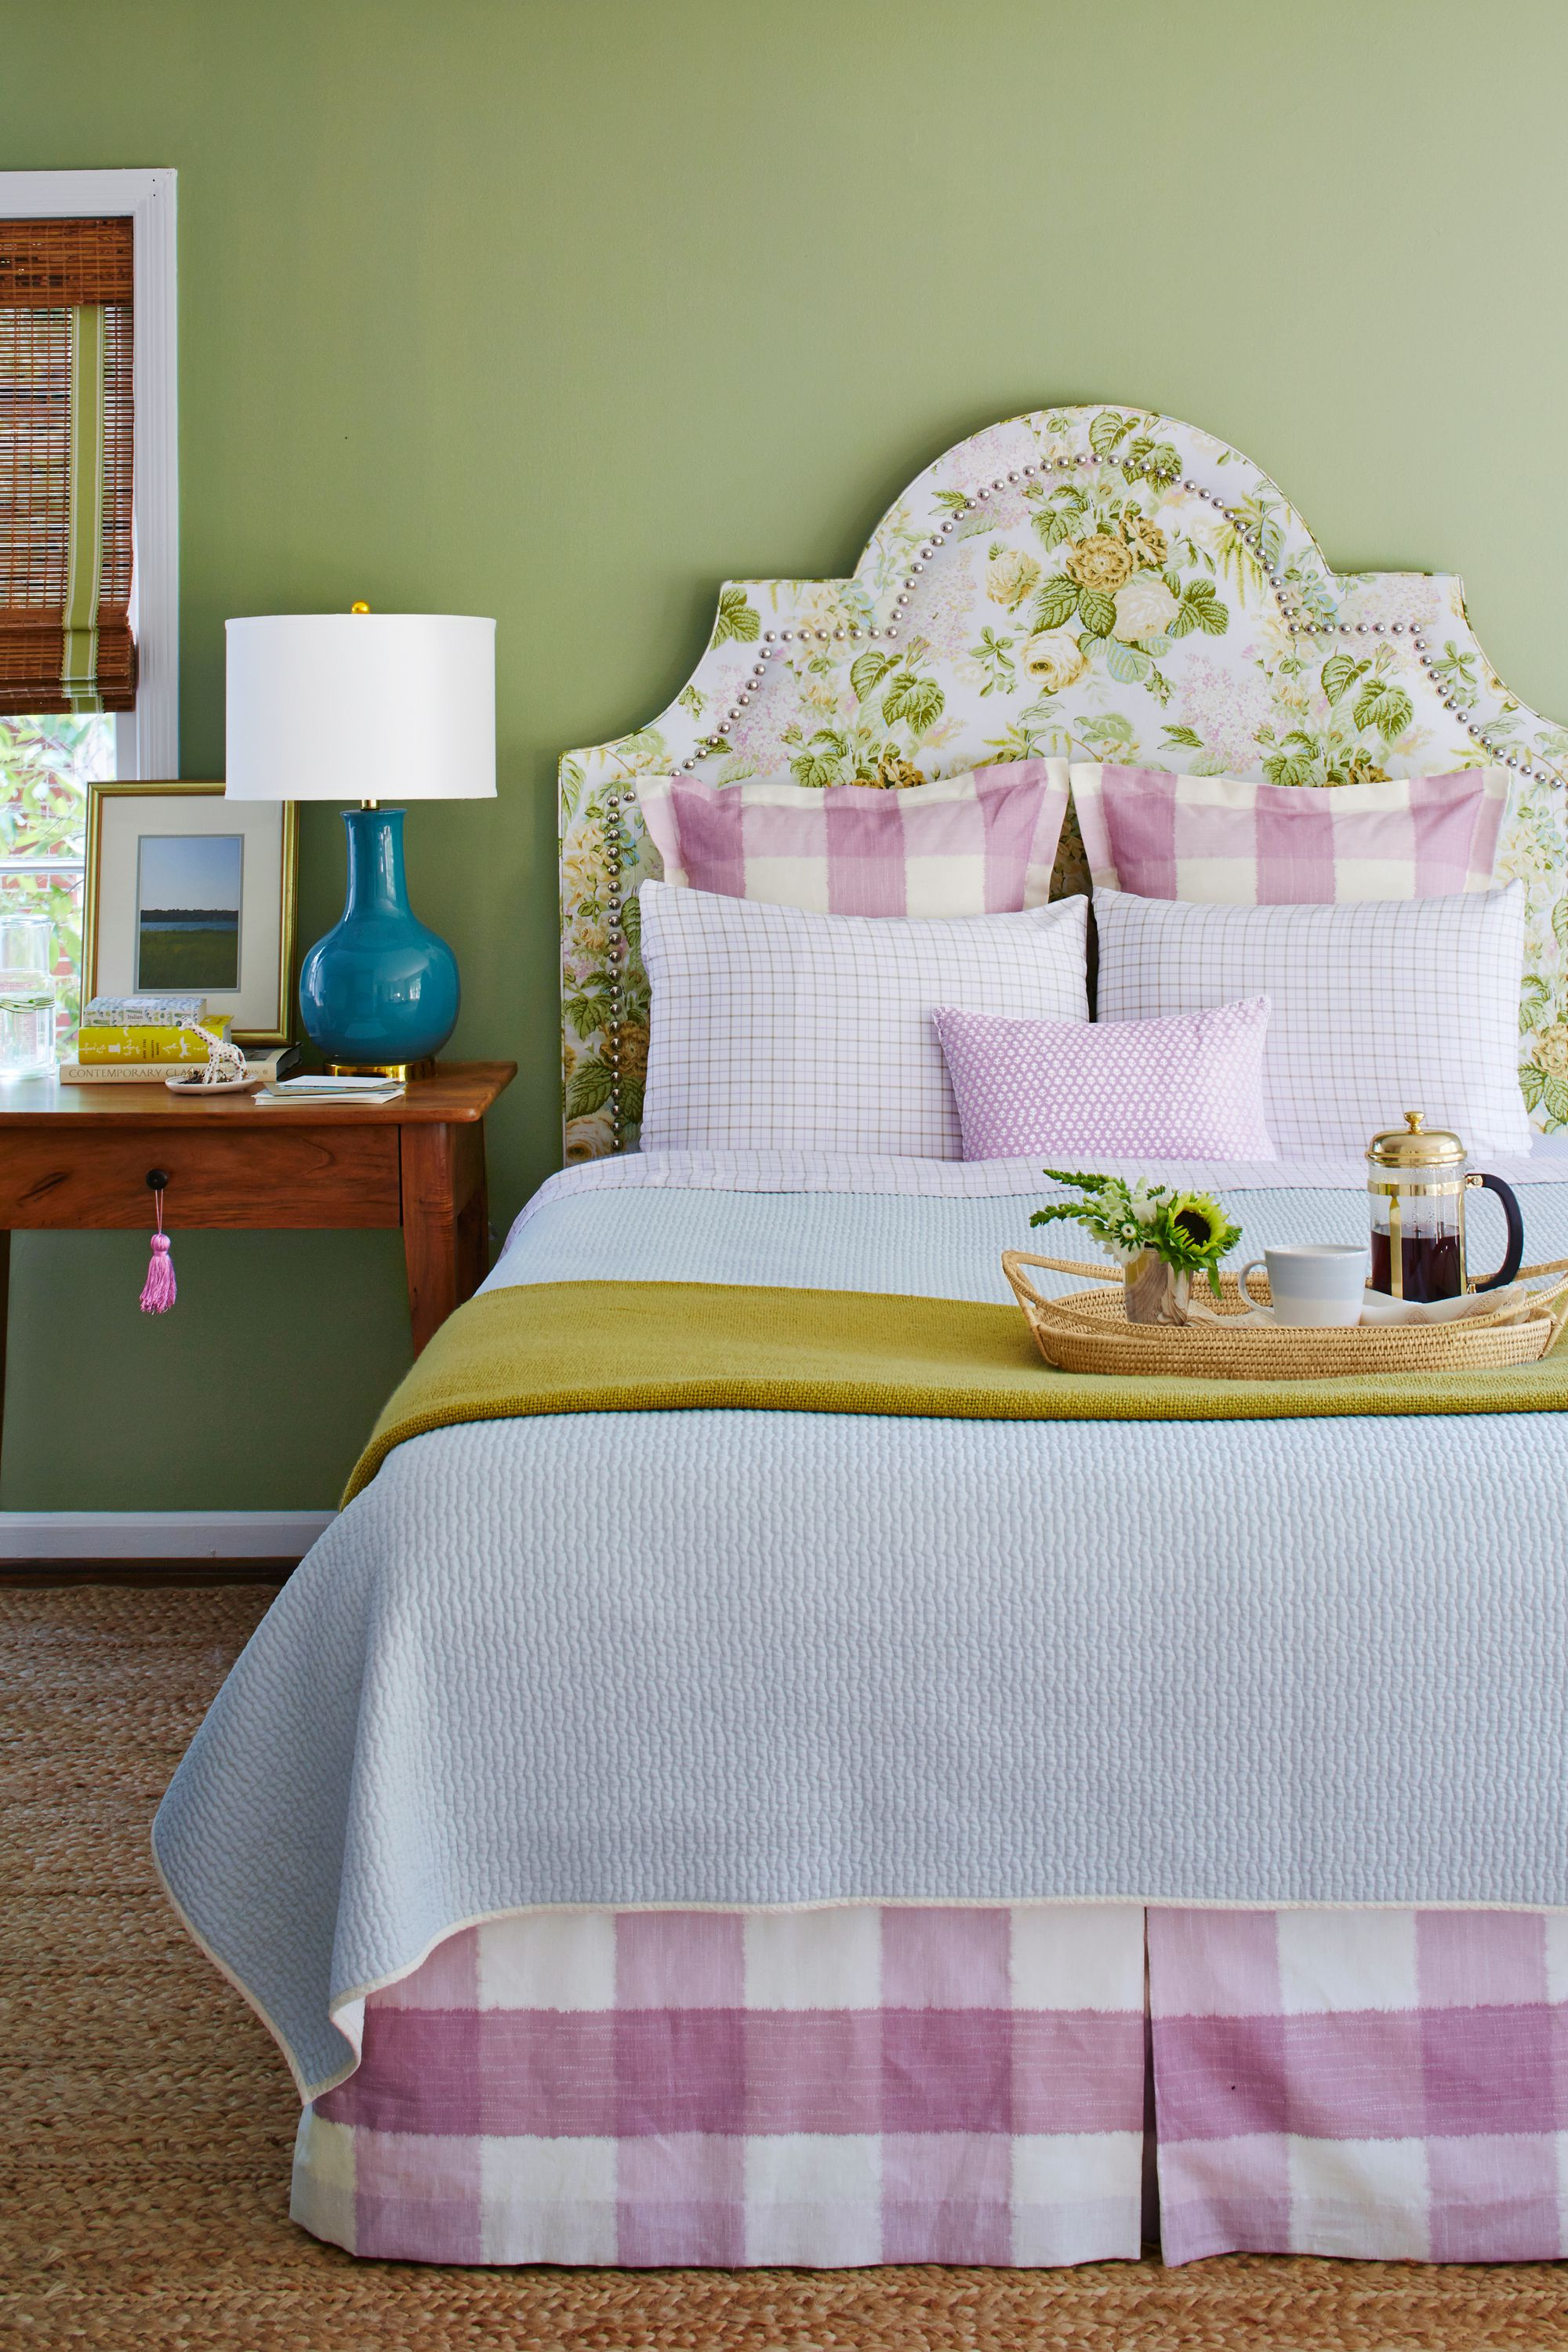 Floral Upholstered Headboard Green Bedroom Walls Gingham Euro Shams Bedskirt